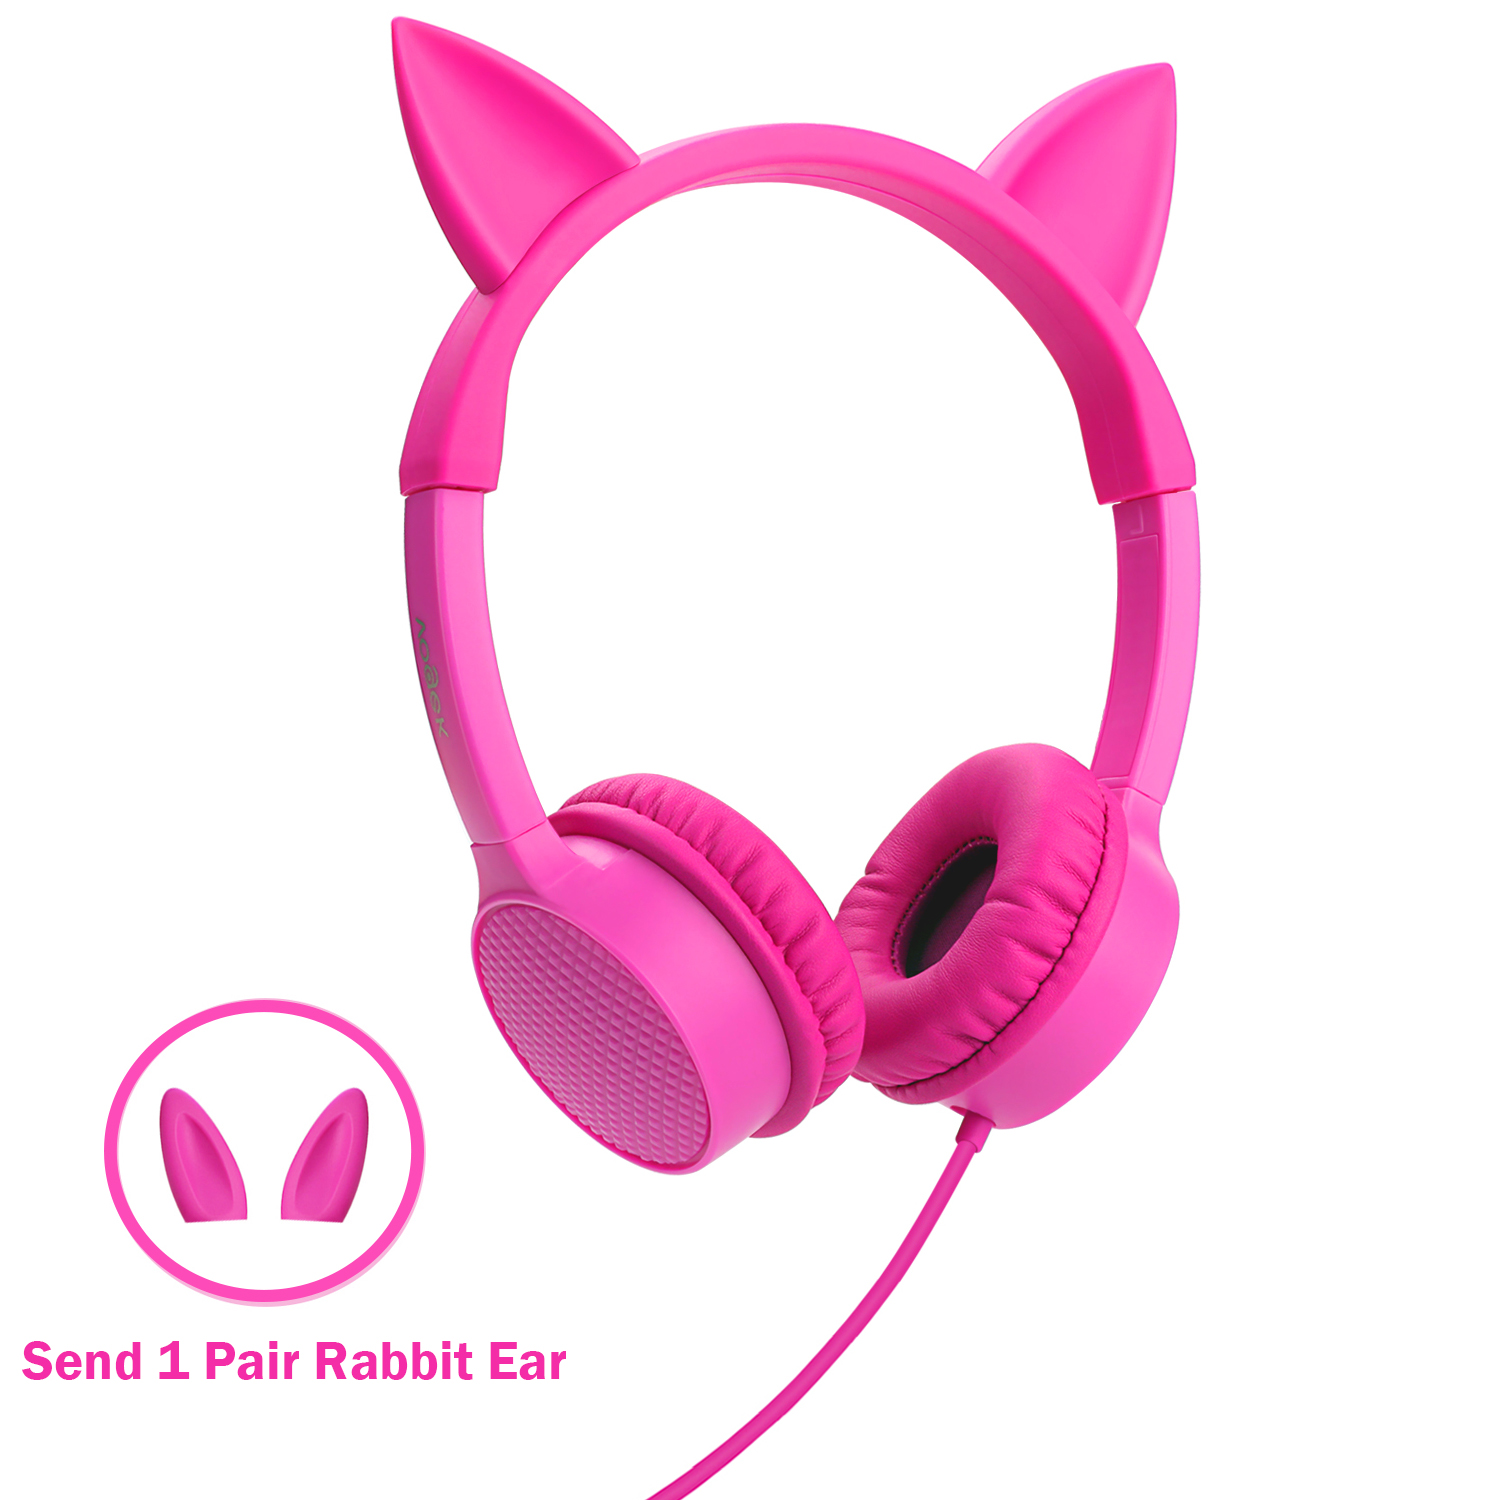 Cat Ear Headphones Kids Headphones, Vogek 2 in 1 Cat / Rabbit Wired On-Ear Headphones Headsets with 85dB volume control, Children Headphones for Kids-Pink